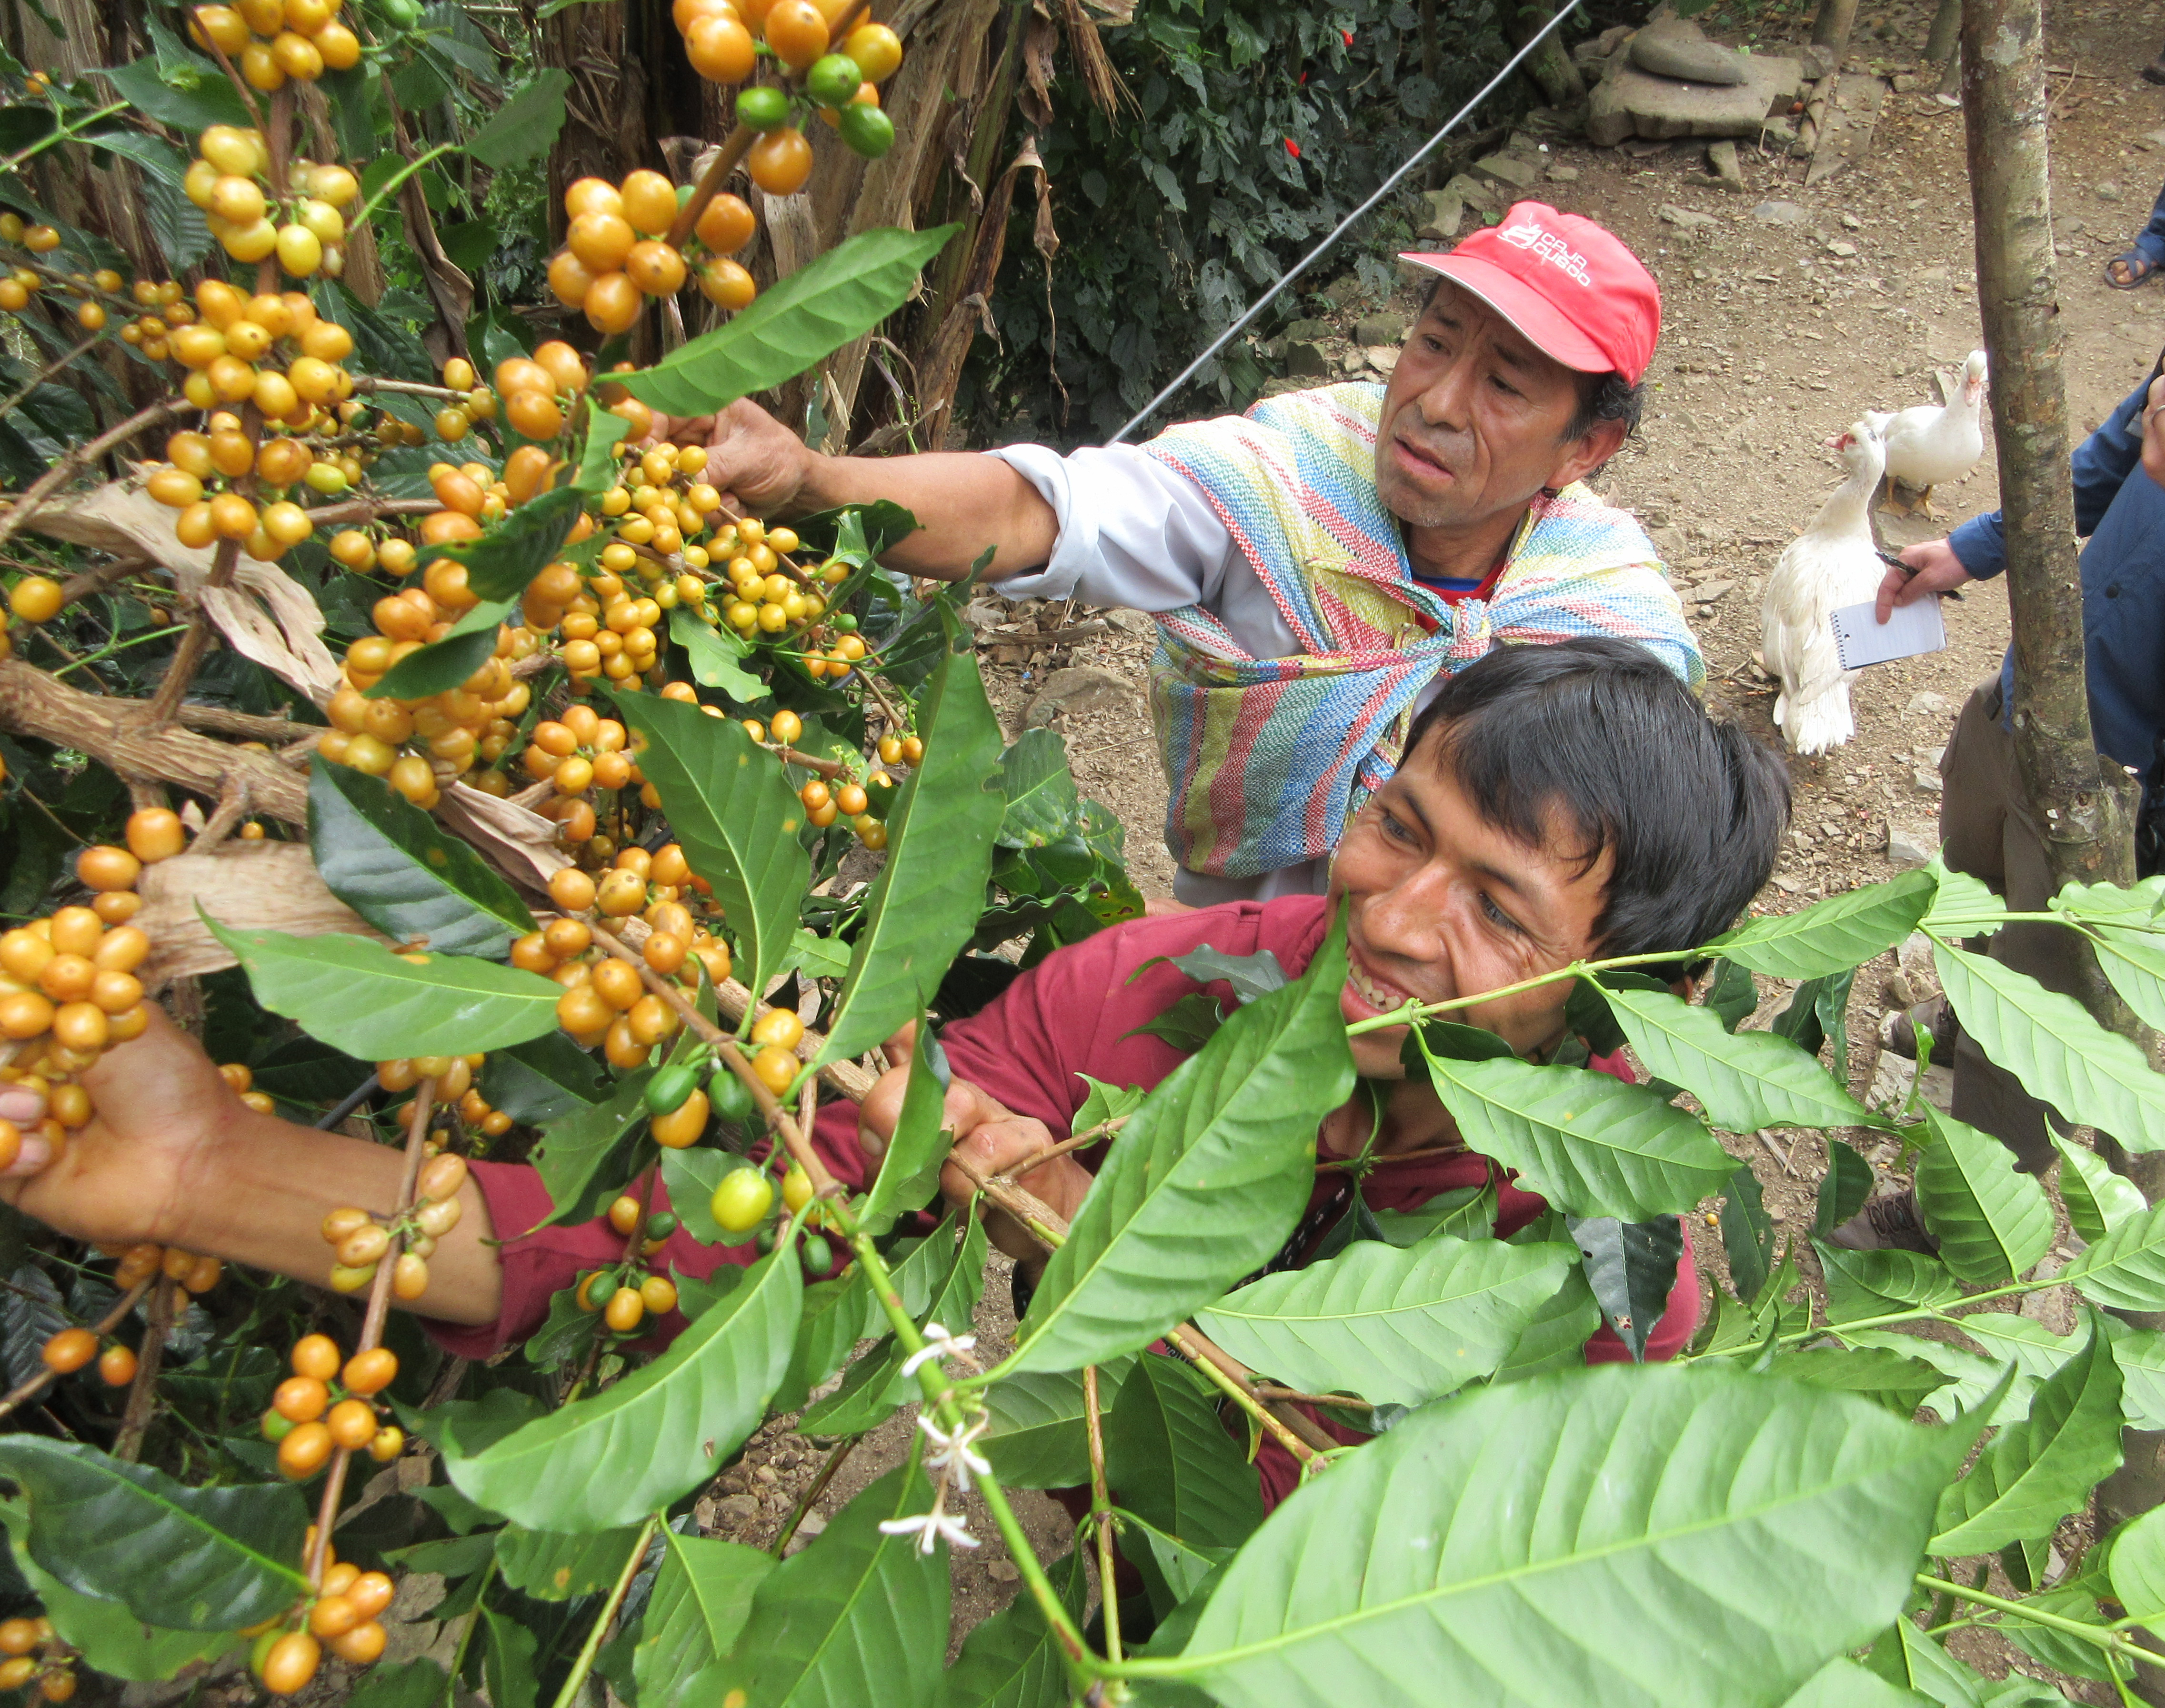 Men picking coffee cherries and smiling.